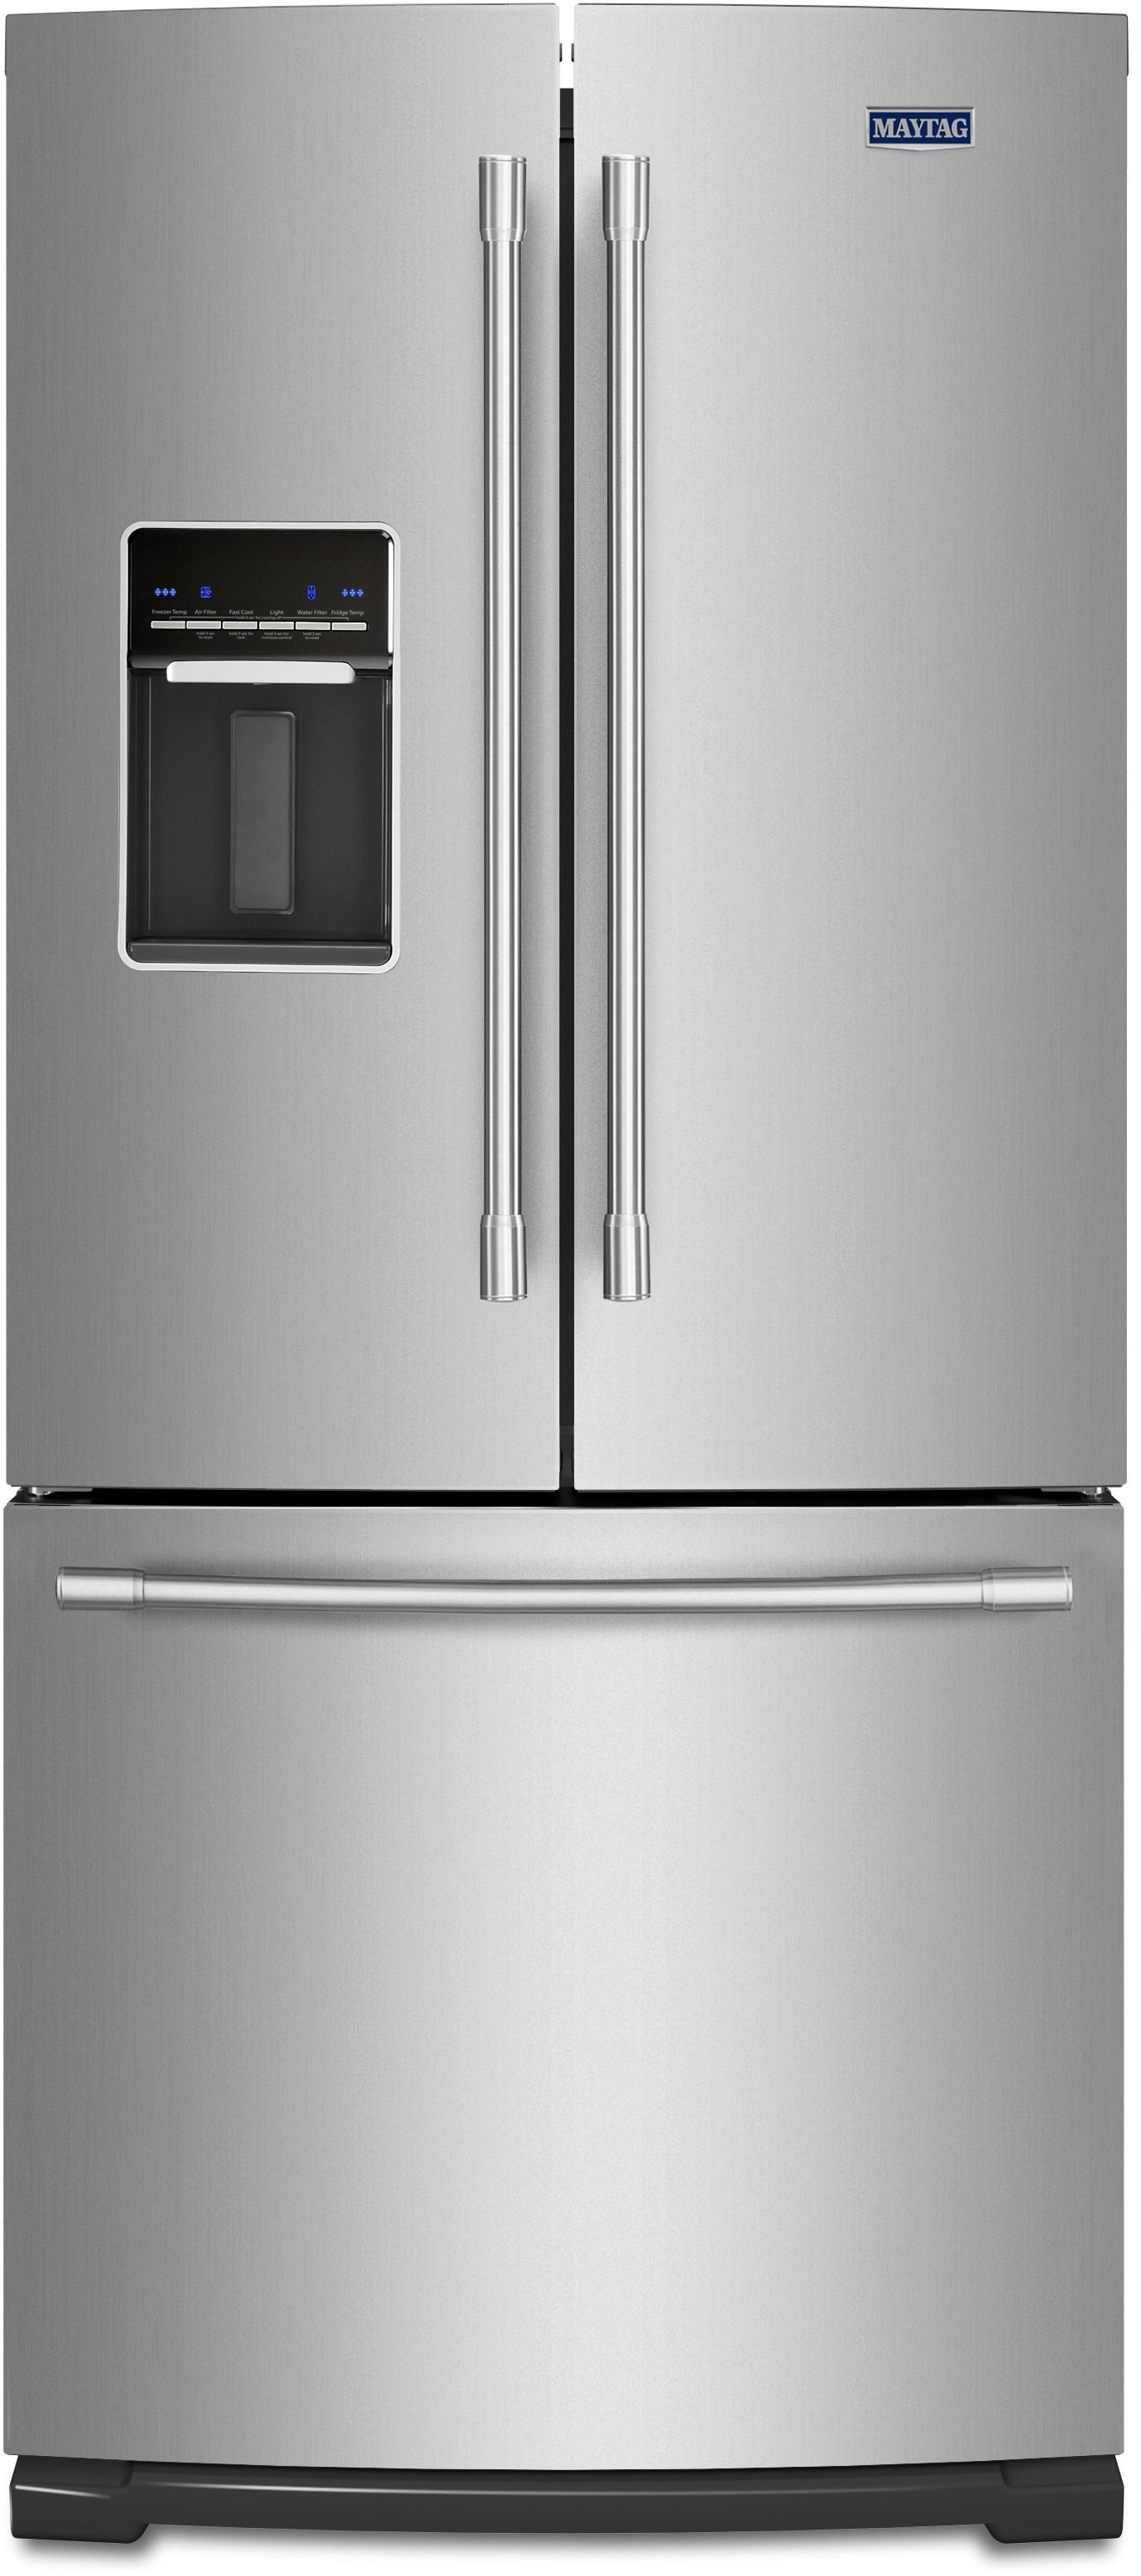 1614 Maytag Mfw2055frz 30 Inch French Door Refrigerator With Wide